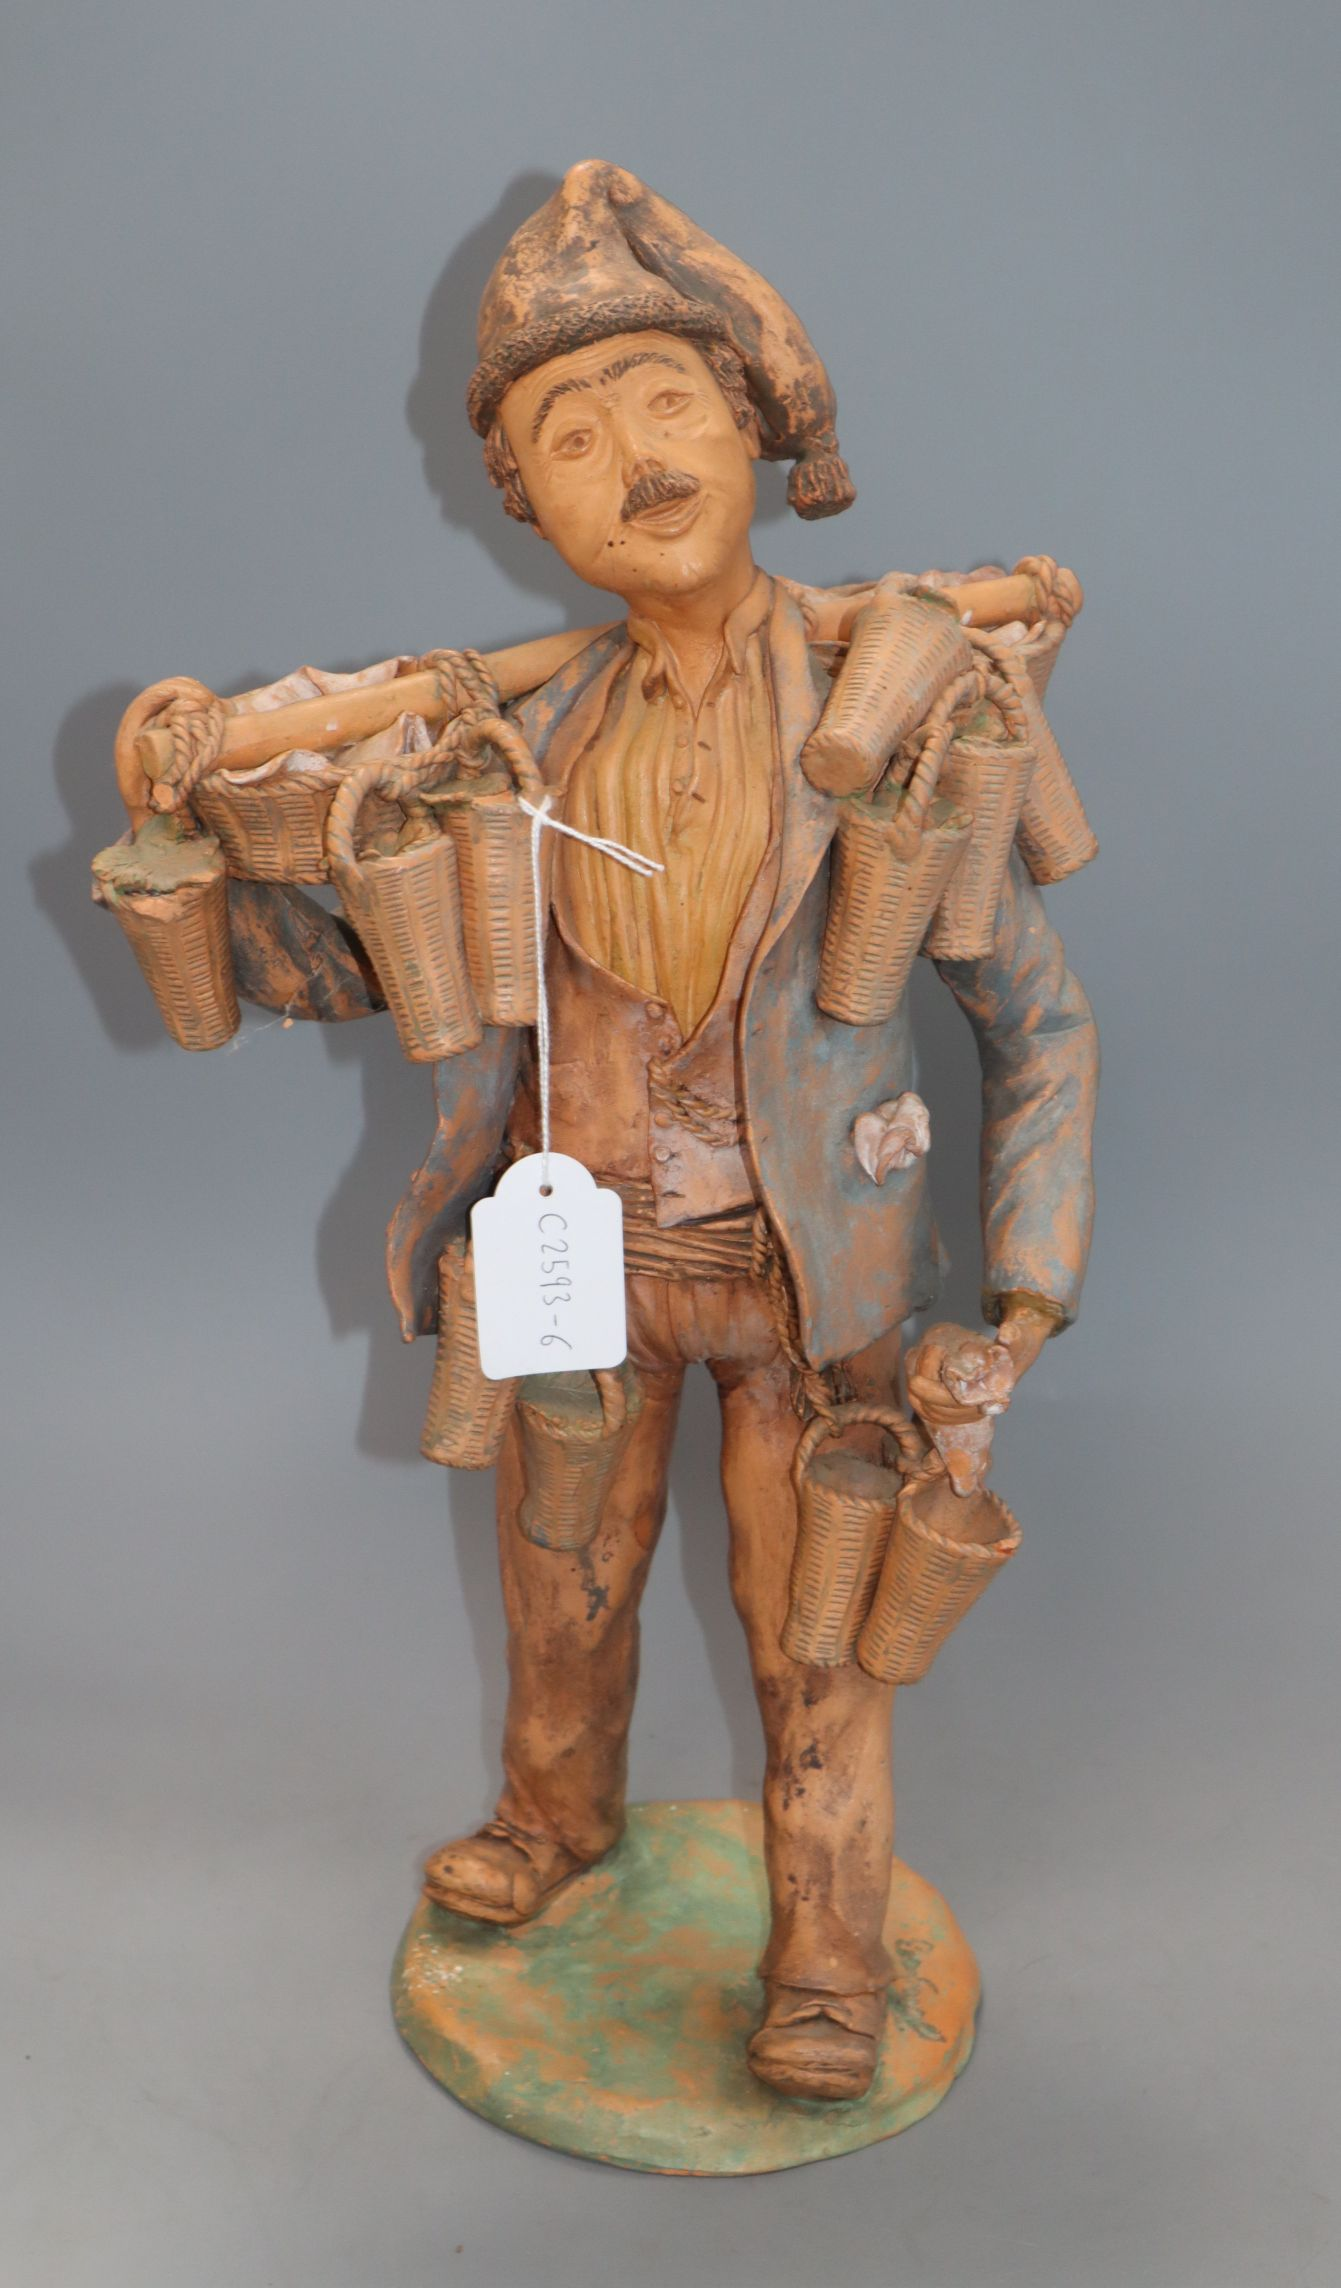 Lot 69 - A signed terracotta figure, 'The strawberry seller', indistinctly signed height 43cm